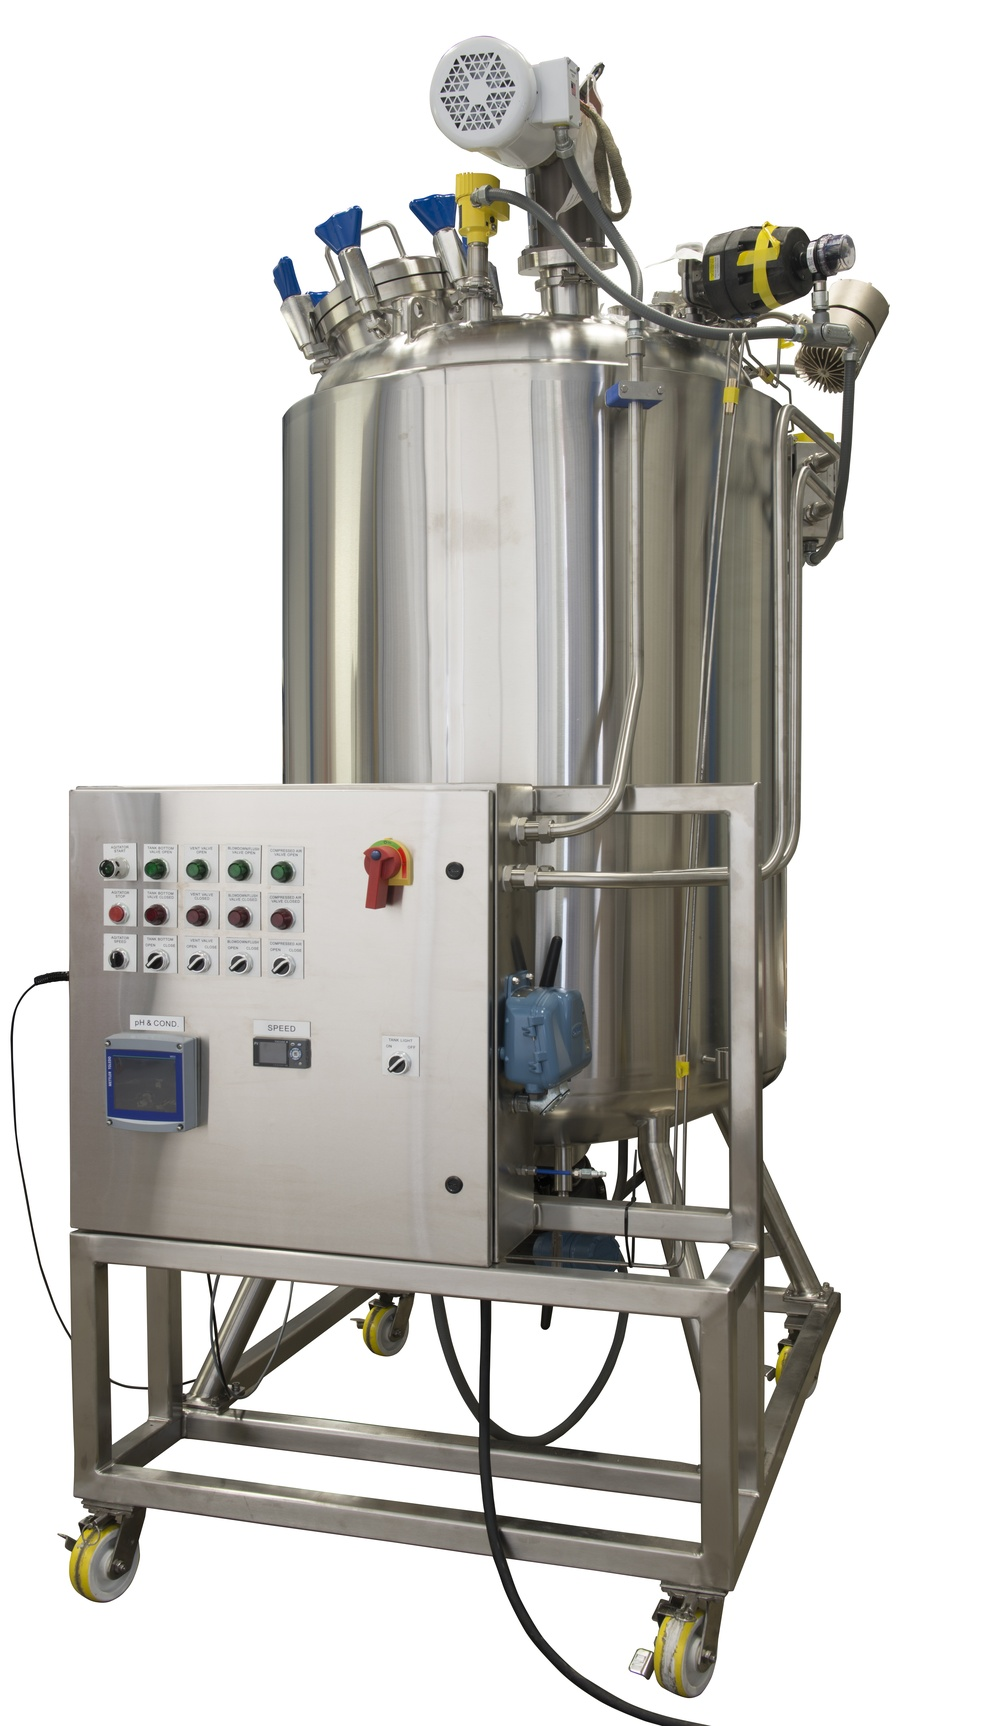 HOLLOWAY proudly produces pharmaceutical stainless steel solutions like this smart tank innovation.